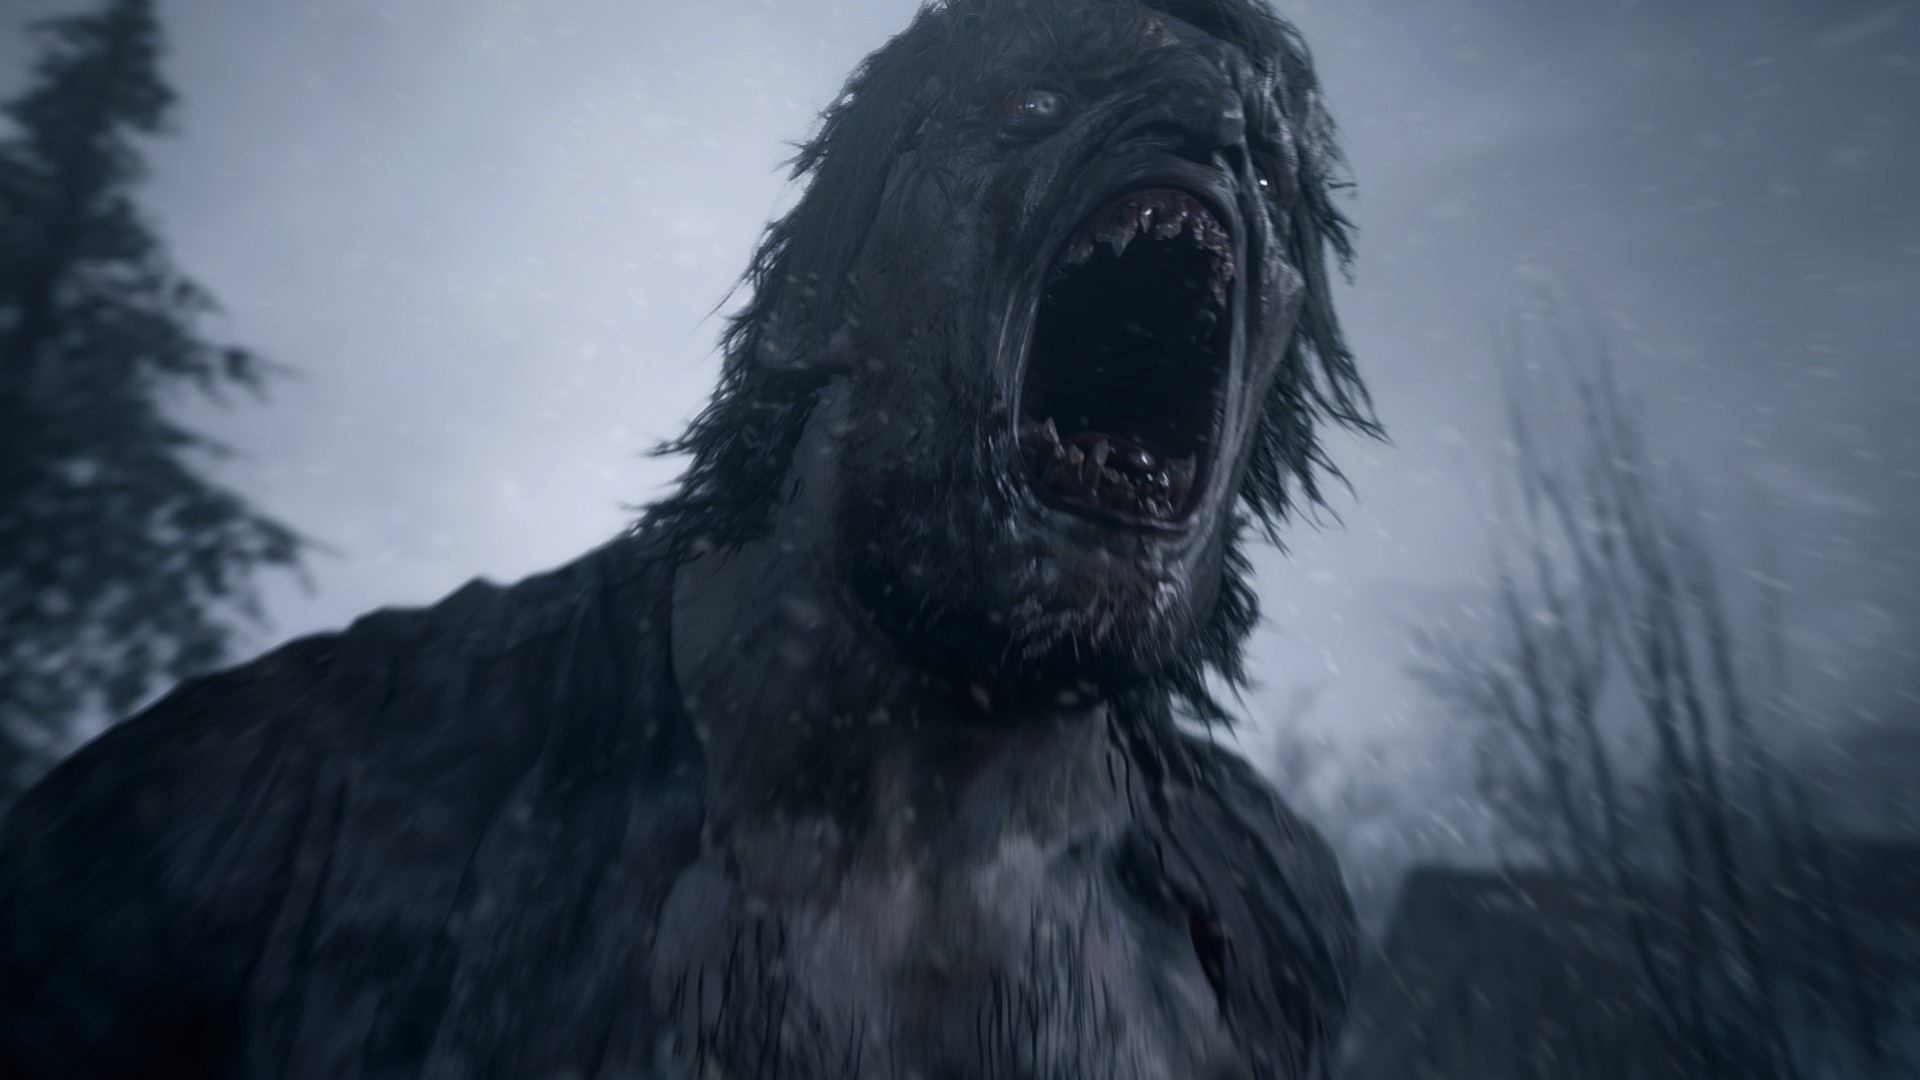 A terrifying monster from Resident Evil: Village roars.